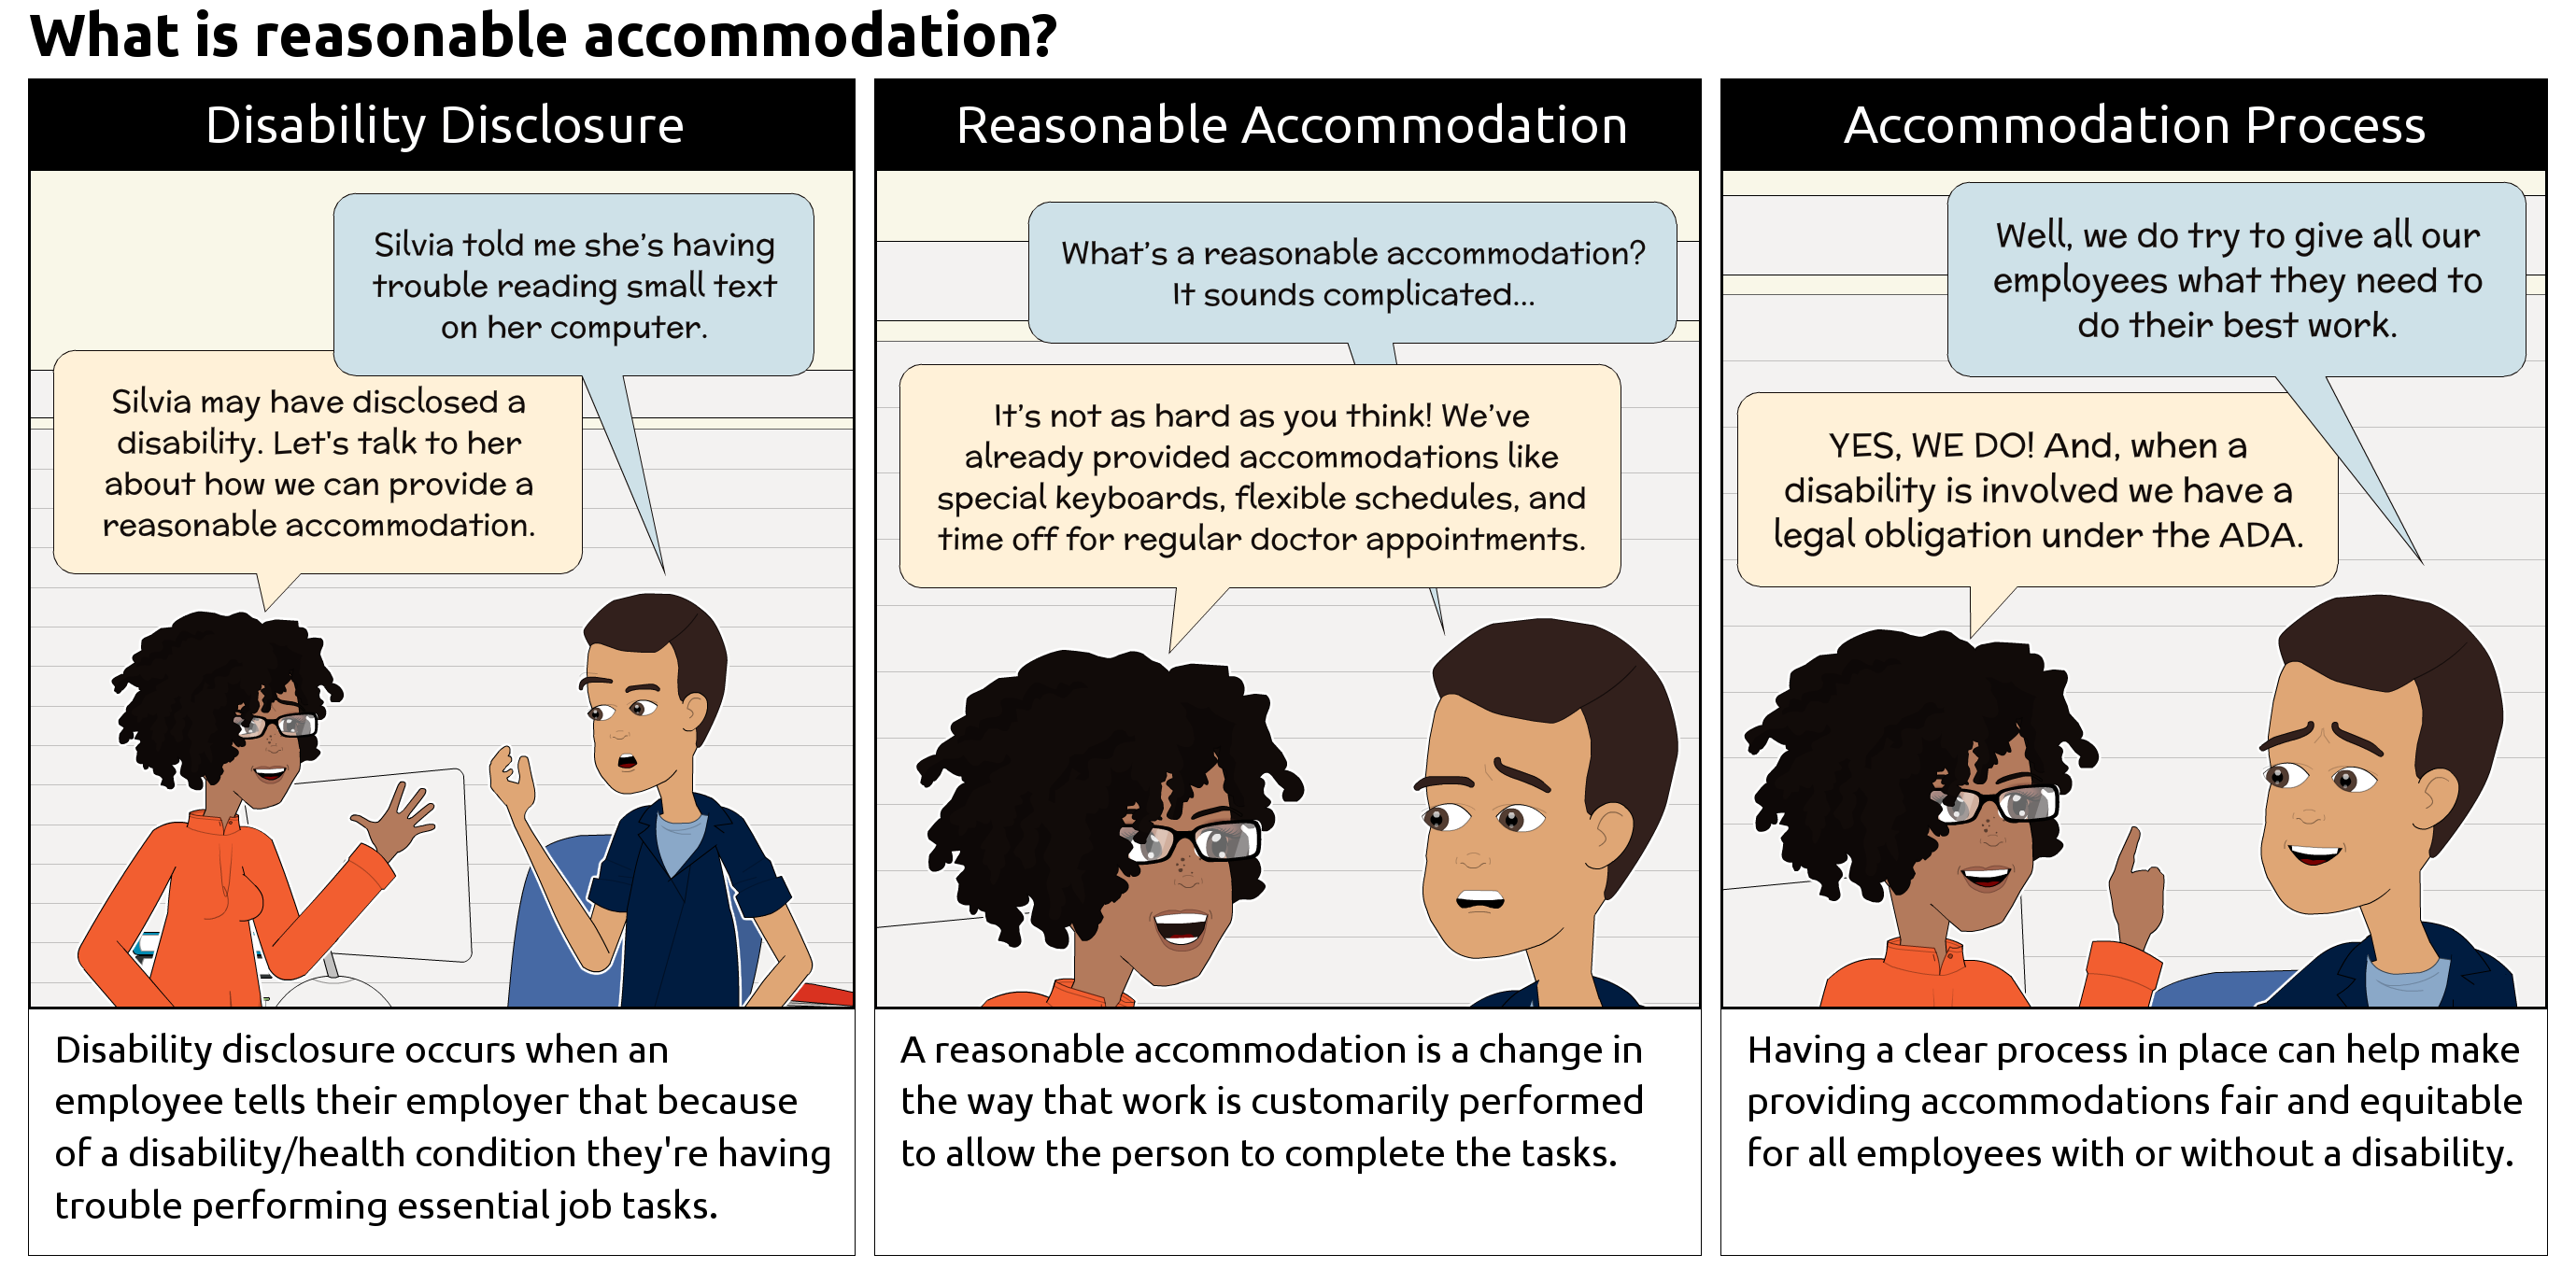 What is reasonable accommodation? Comics have two office workers; one is intended to be a small business owner (male) and the other someone in an HR Role (female). Panel #1 Disability Disclosure Small business owner: 'Silva told me she's having trouble reading the small text on her computer.' Someone in an HR Role: 'Silvia may have disclosed a disability. Let's talk to her about how we can provide a reasonable accommodation.' Supporting text: Disability disclosure occurs when an employee tells their employer that because of a disability/health condition they're having trouble performing an essential job task  Panel #2 Reasonable Accommodation Small business owner: 'What's a reasonable accommodation? It sounds complicated…' Someone in an HR Role: 'It's not as hard as you think! We've already provided accommodations like special keyboards, flexible schedules and time off for regular doctor appointments.' Supporting text: A reasonable accommodation is a change in the way that work is customarily performed to allow the person to complete the tasks.  Panel #3 Accommodation Process Small business owner: 'Well, we do try to give all our employees what they need to do their best work.' Someone in an HR Role: 'YES WE DO! And, when a disability is involved, we a have legal obligation under the ADA.' Supporting text: Having a clear process in place can help make providing accommodation fair and equitable for all employees with or without a disability.